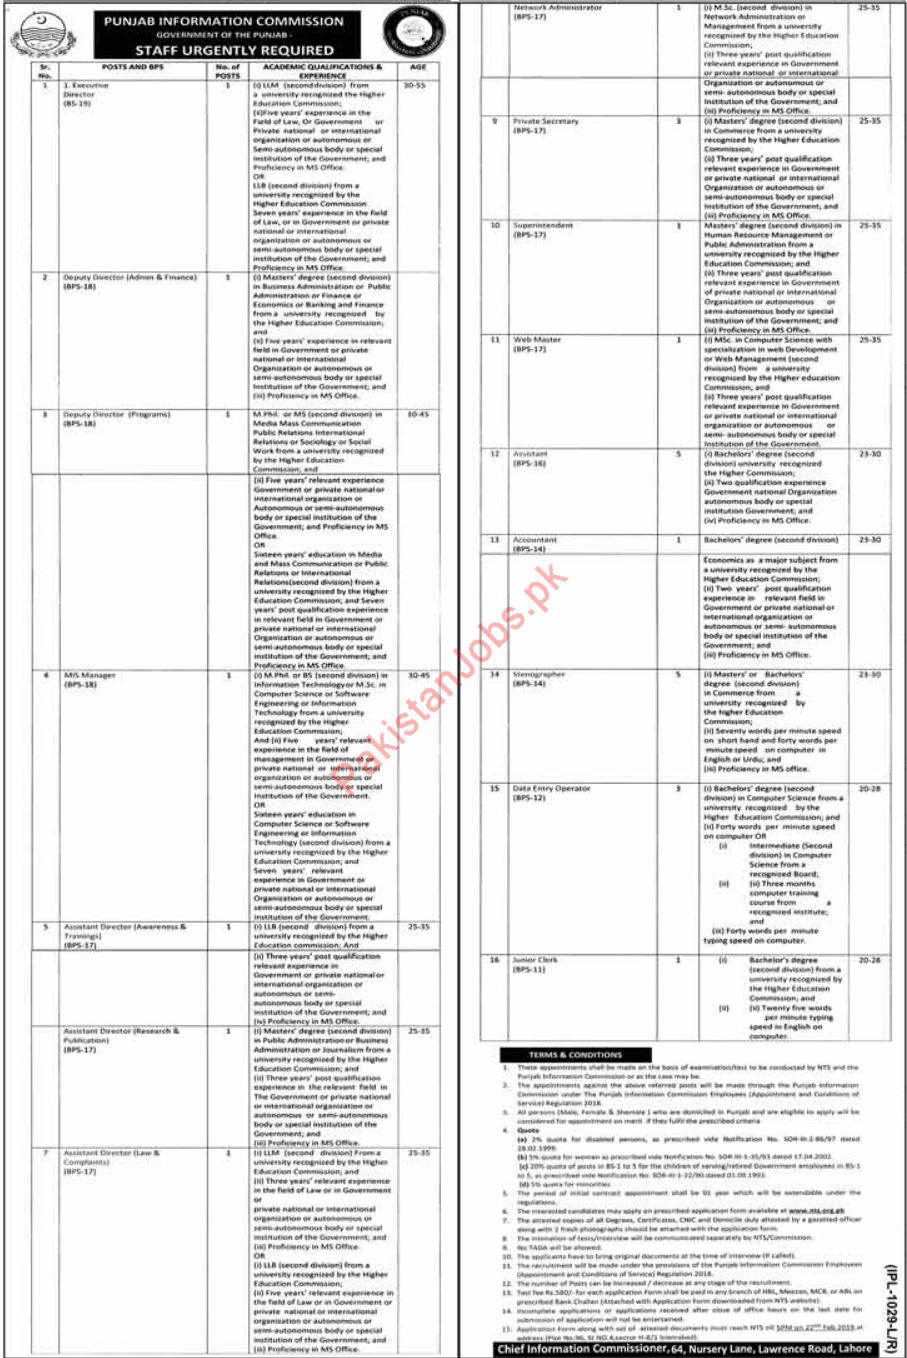 Punjab Information Commission Jobs 2019 In Lahore Through NTS 2019